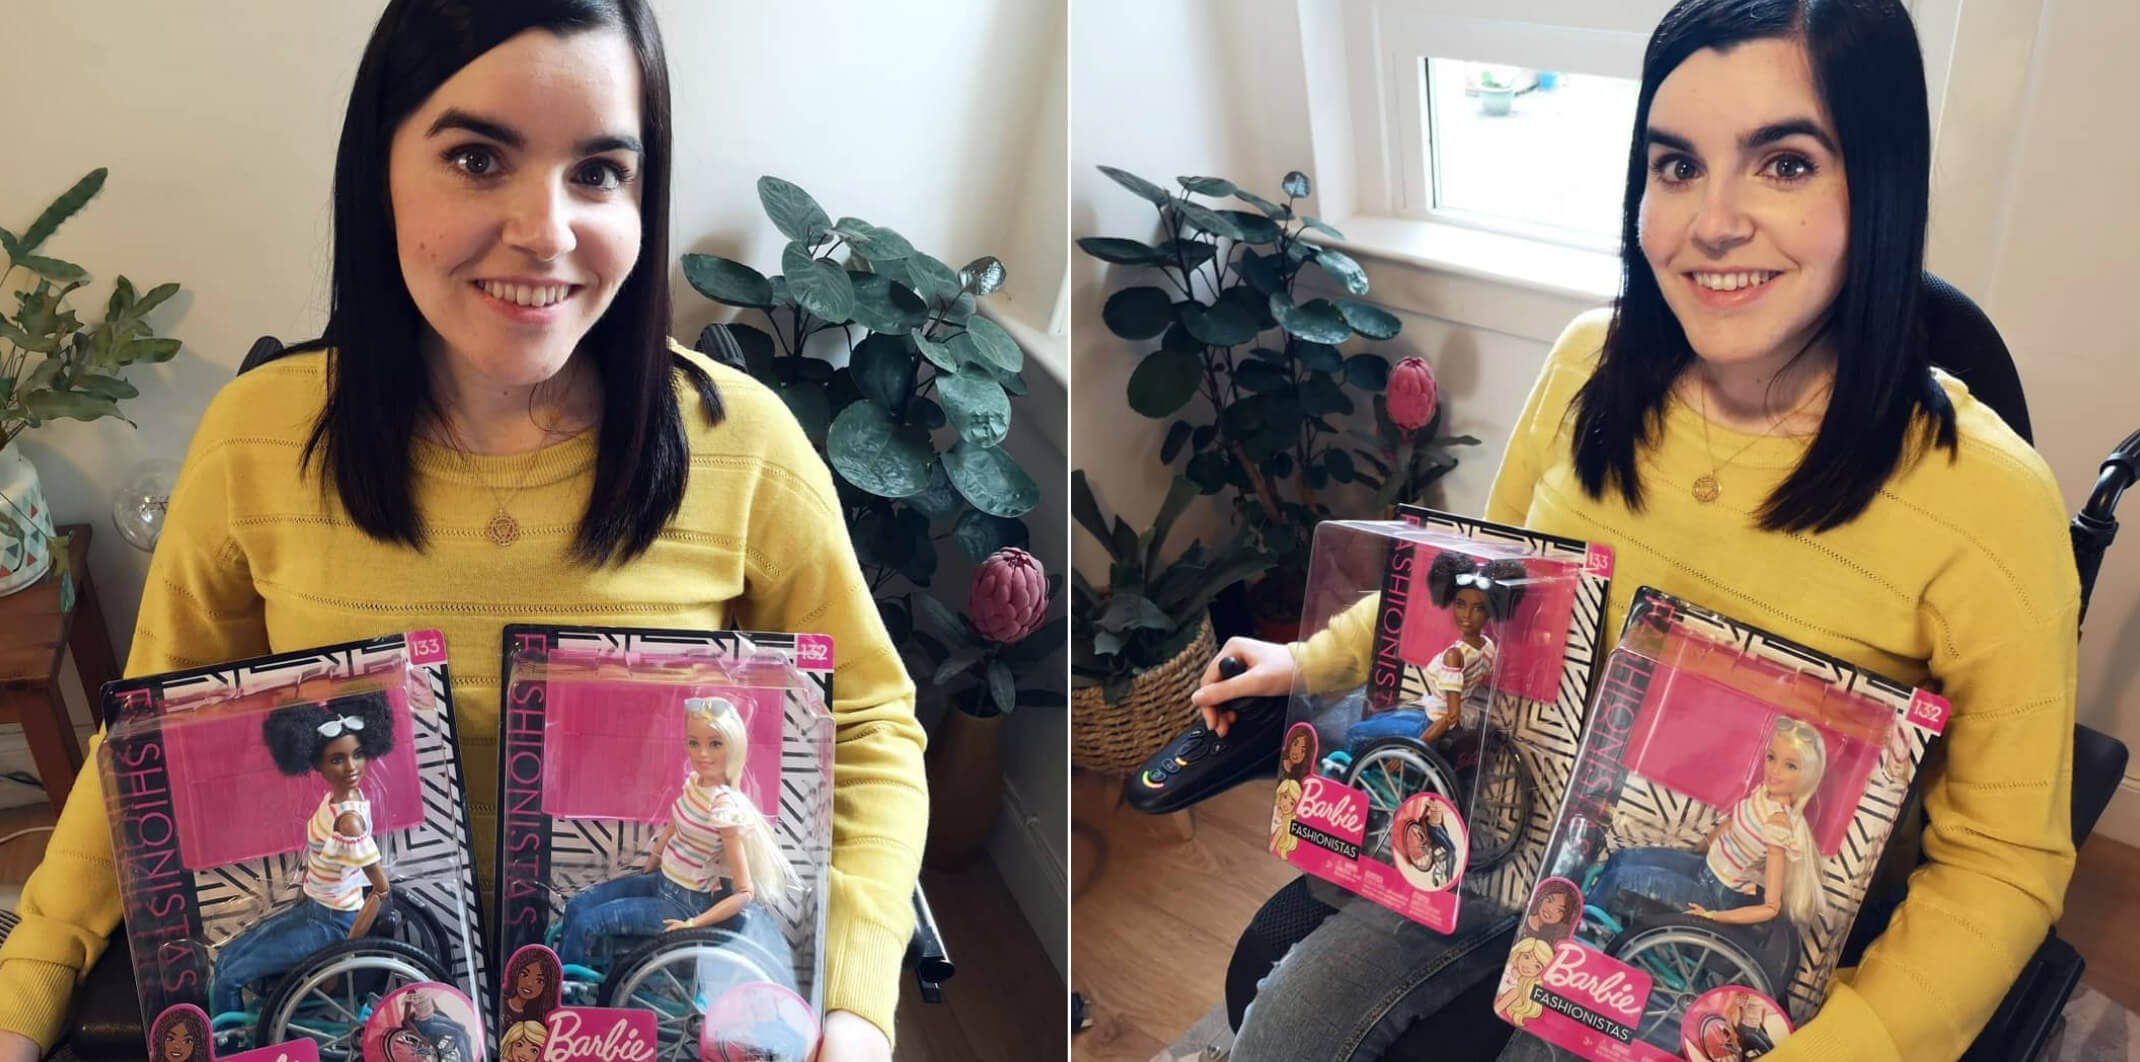 Emma proudly holding two boxes containing Wheelchair Barbies.